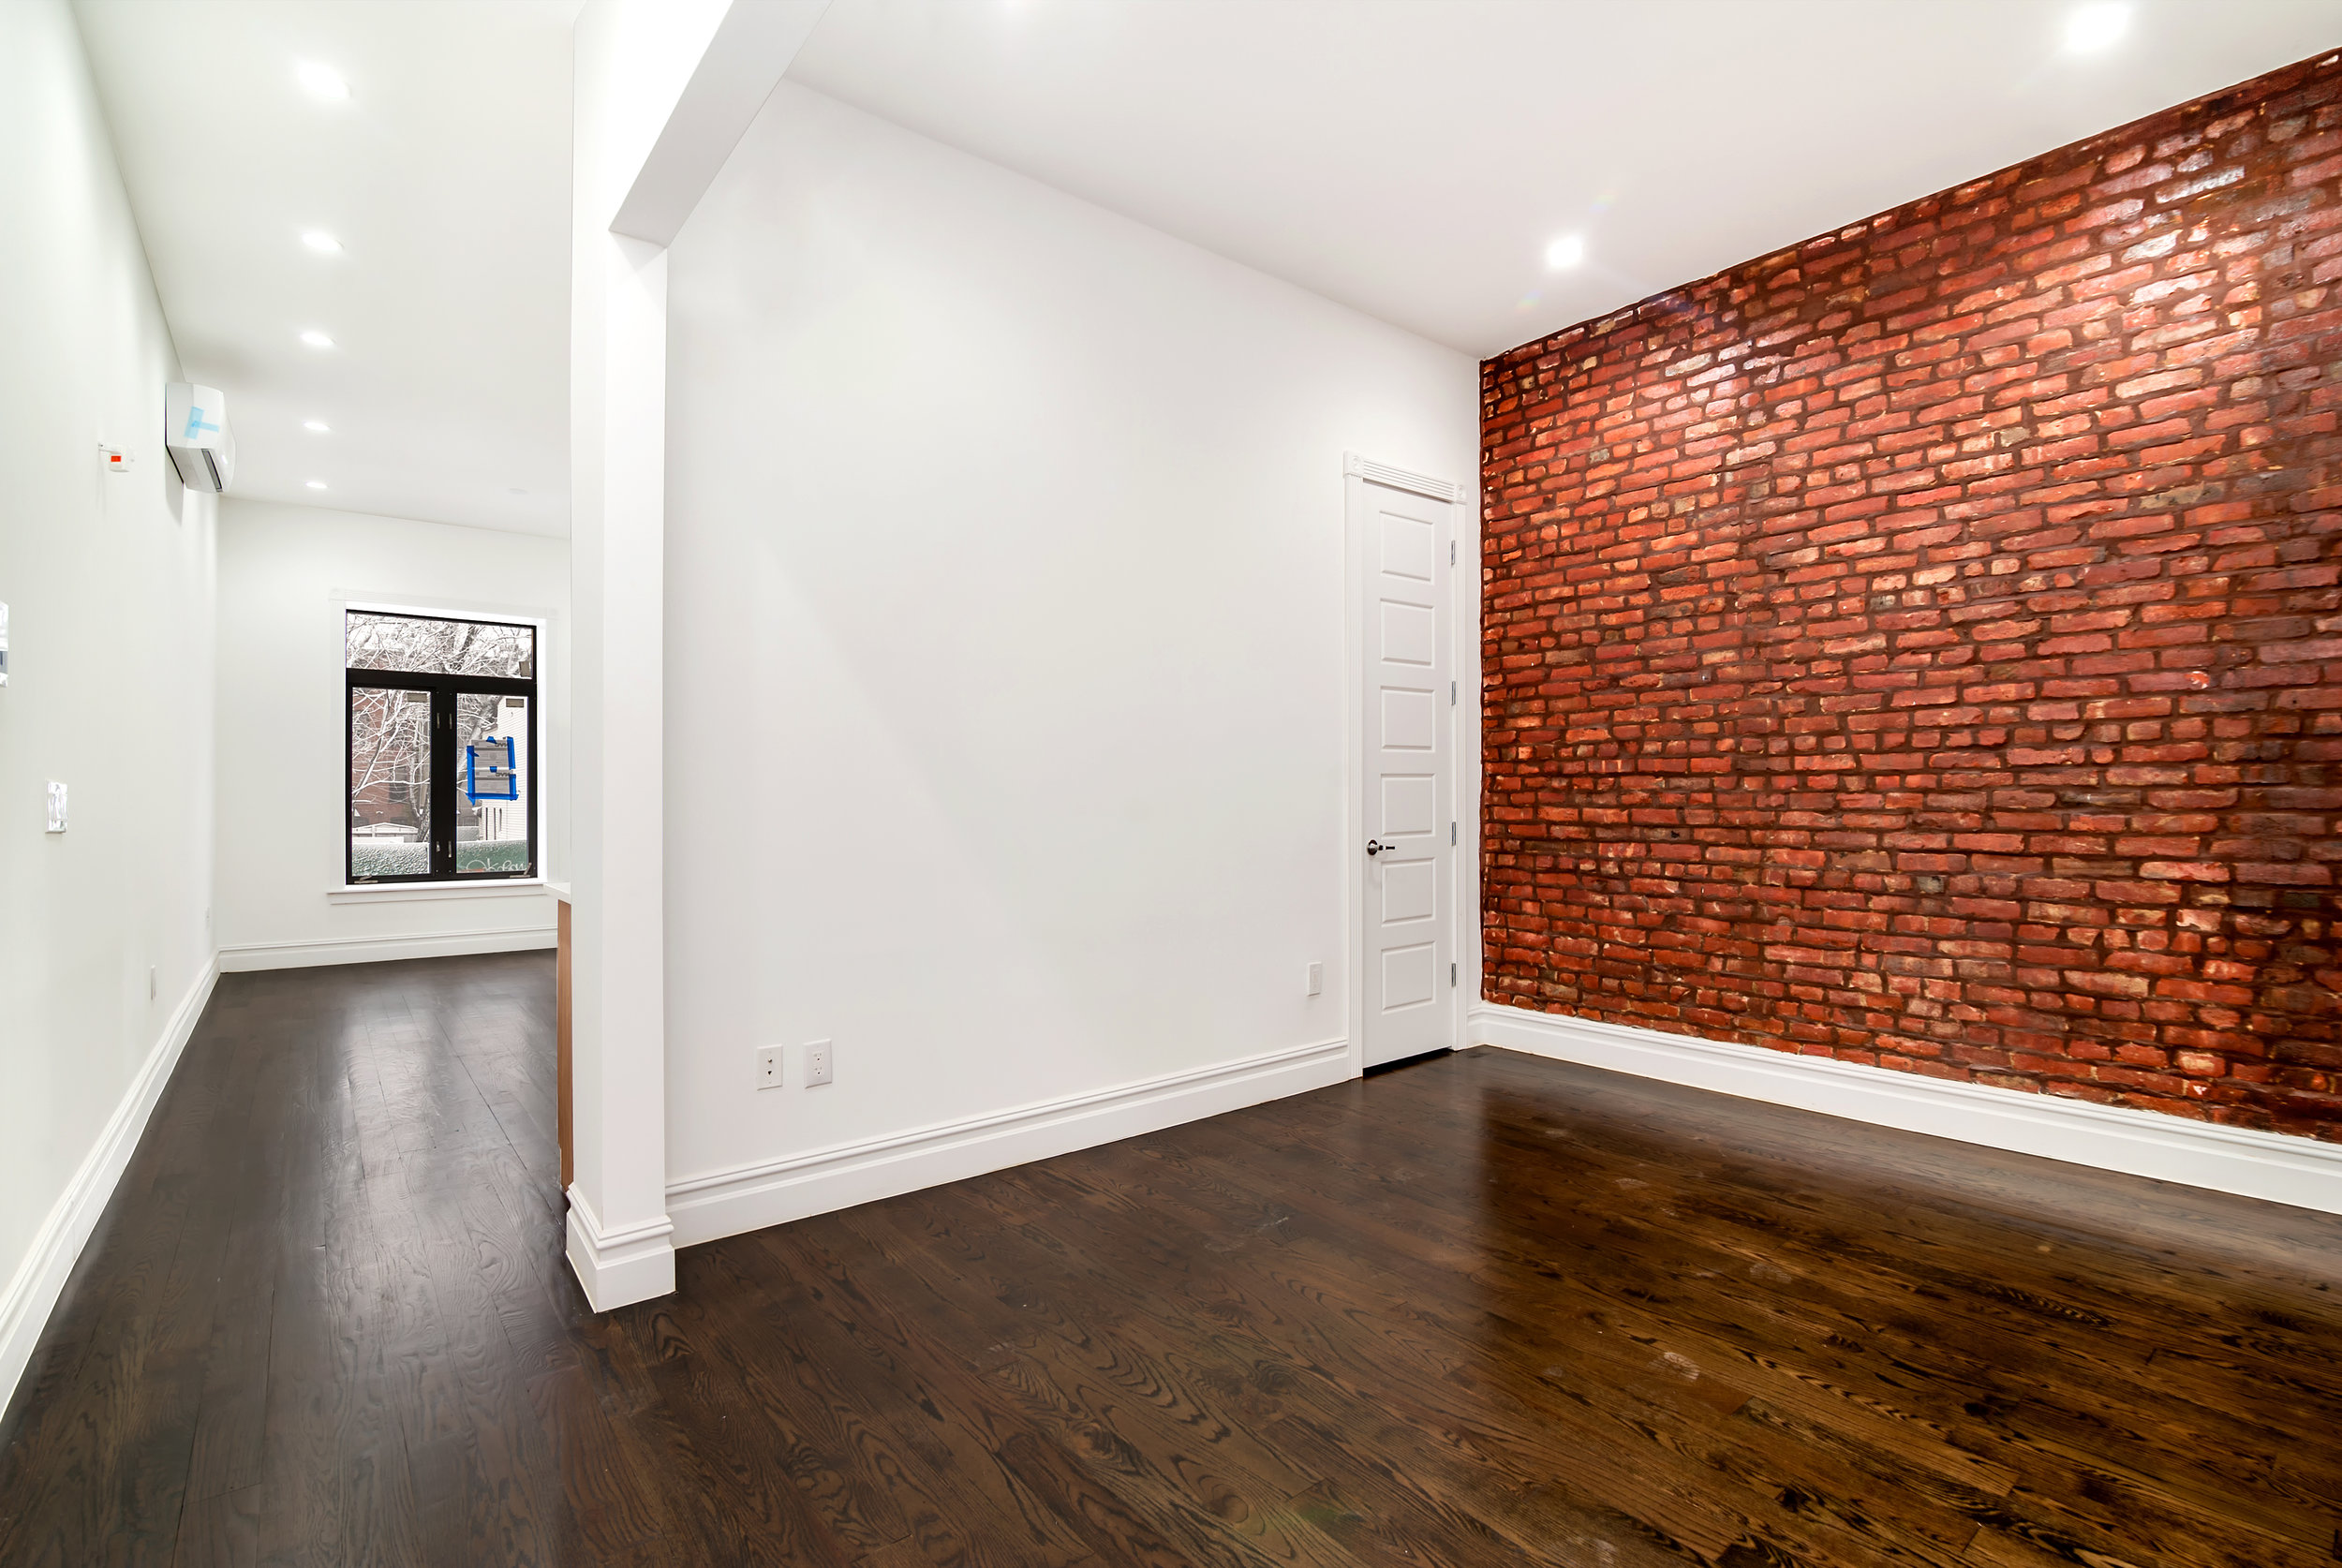 629A Madison Street brick wall #2.jpg